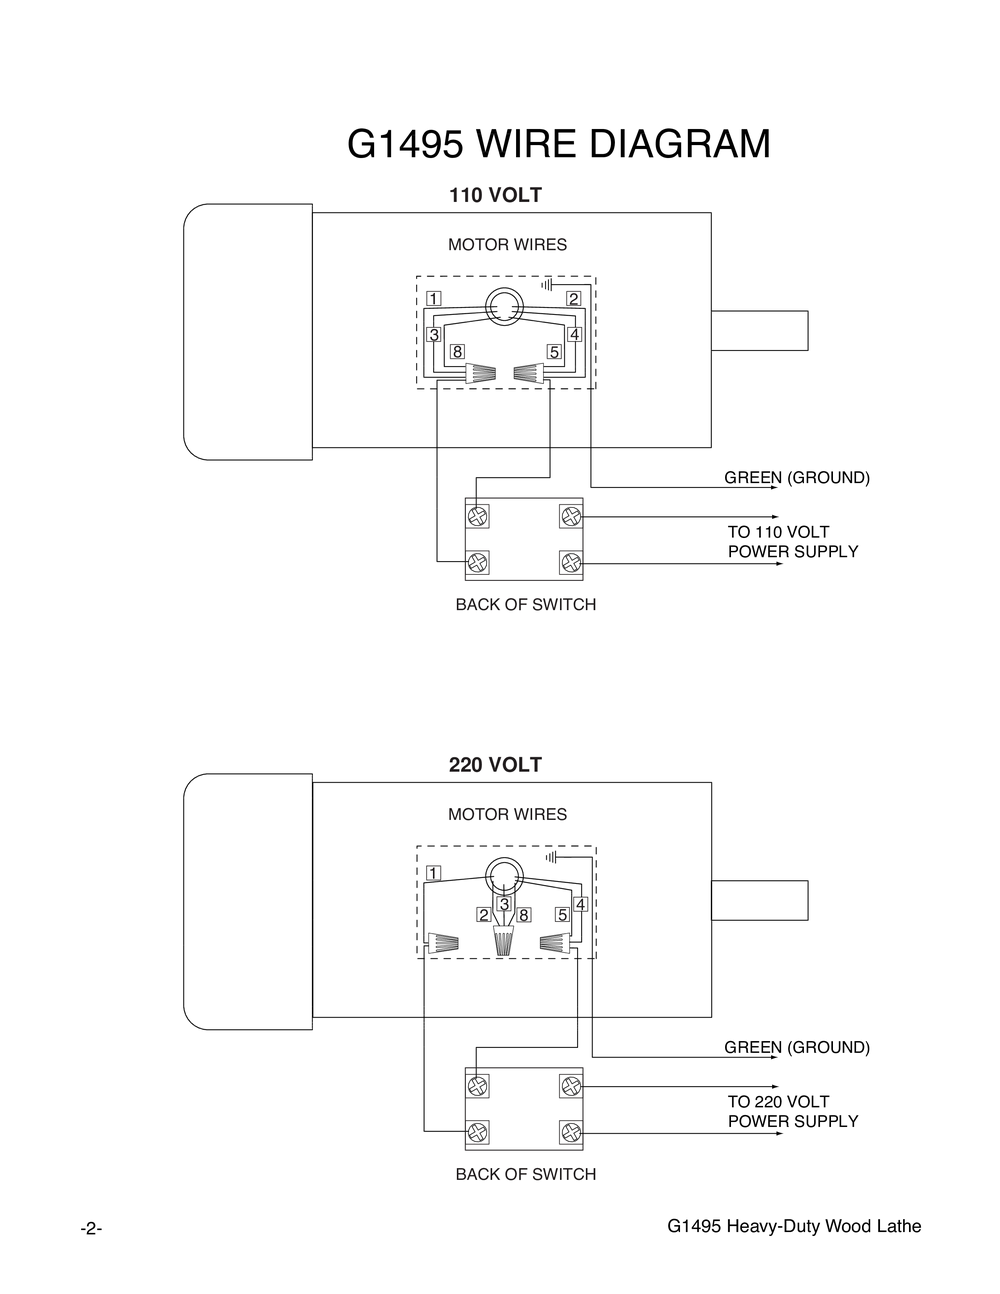 shop tools and machinery at grizzly com Motor Control Wiring Diagrams if you cannot locate your part below, please contact our tech support department at techsupport@grizzly com or 570 546 9663